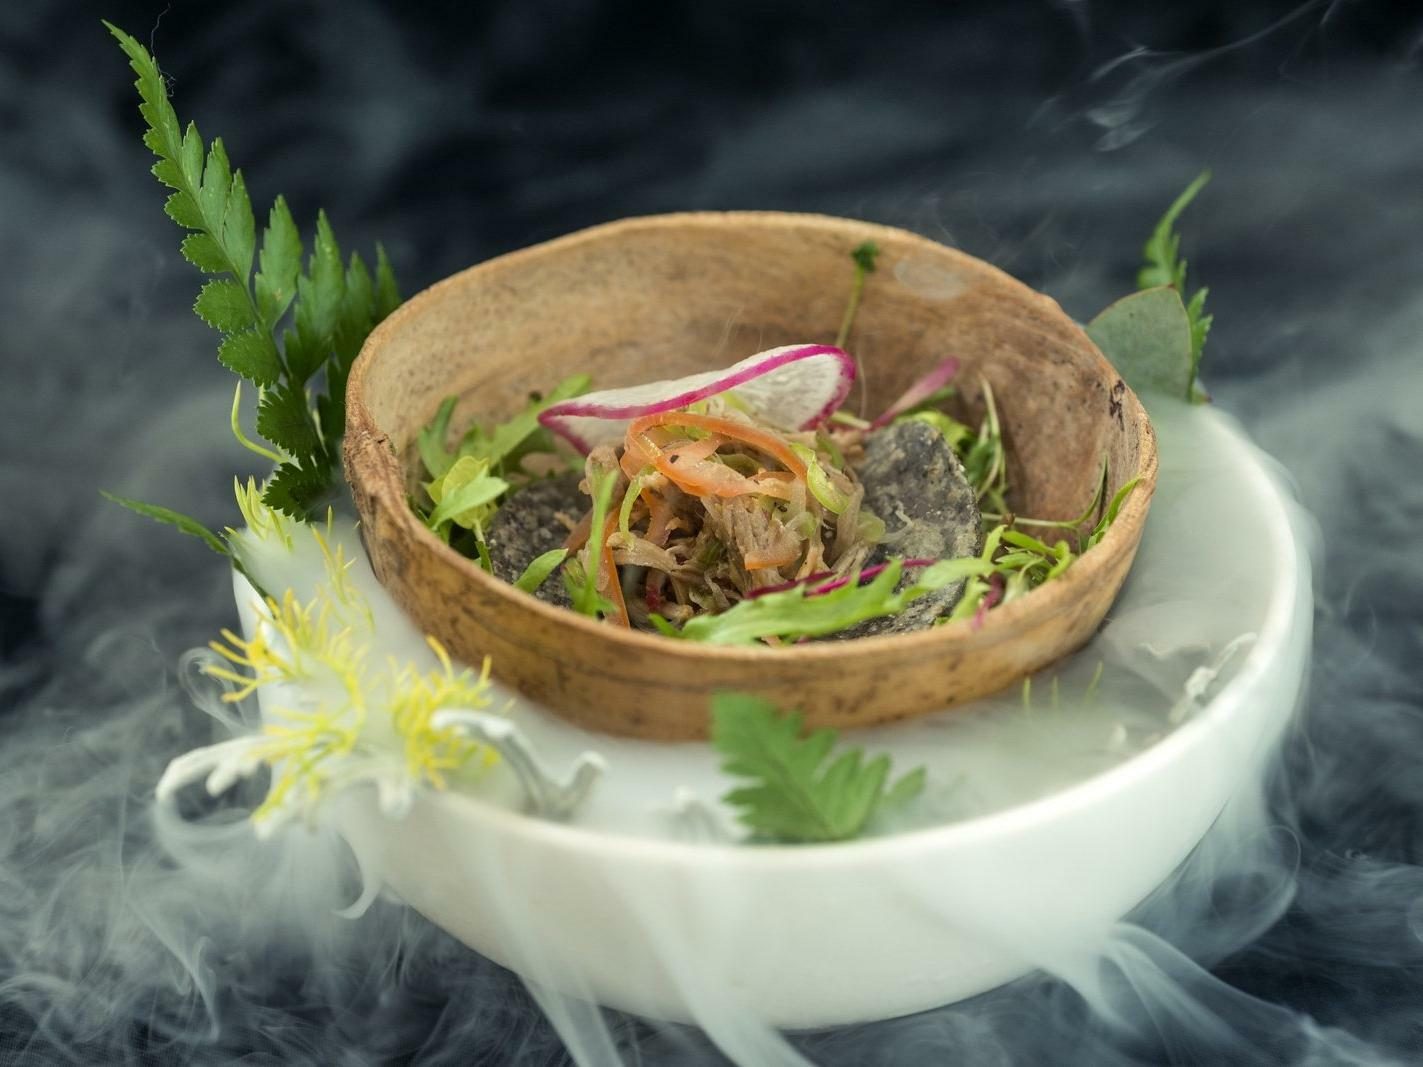 bowl of food over white bowl with smoke billowing out underneath